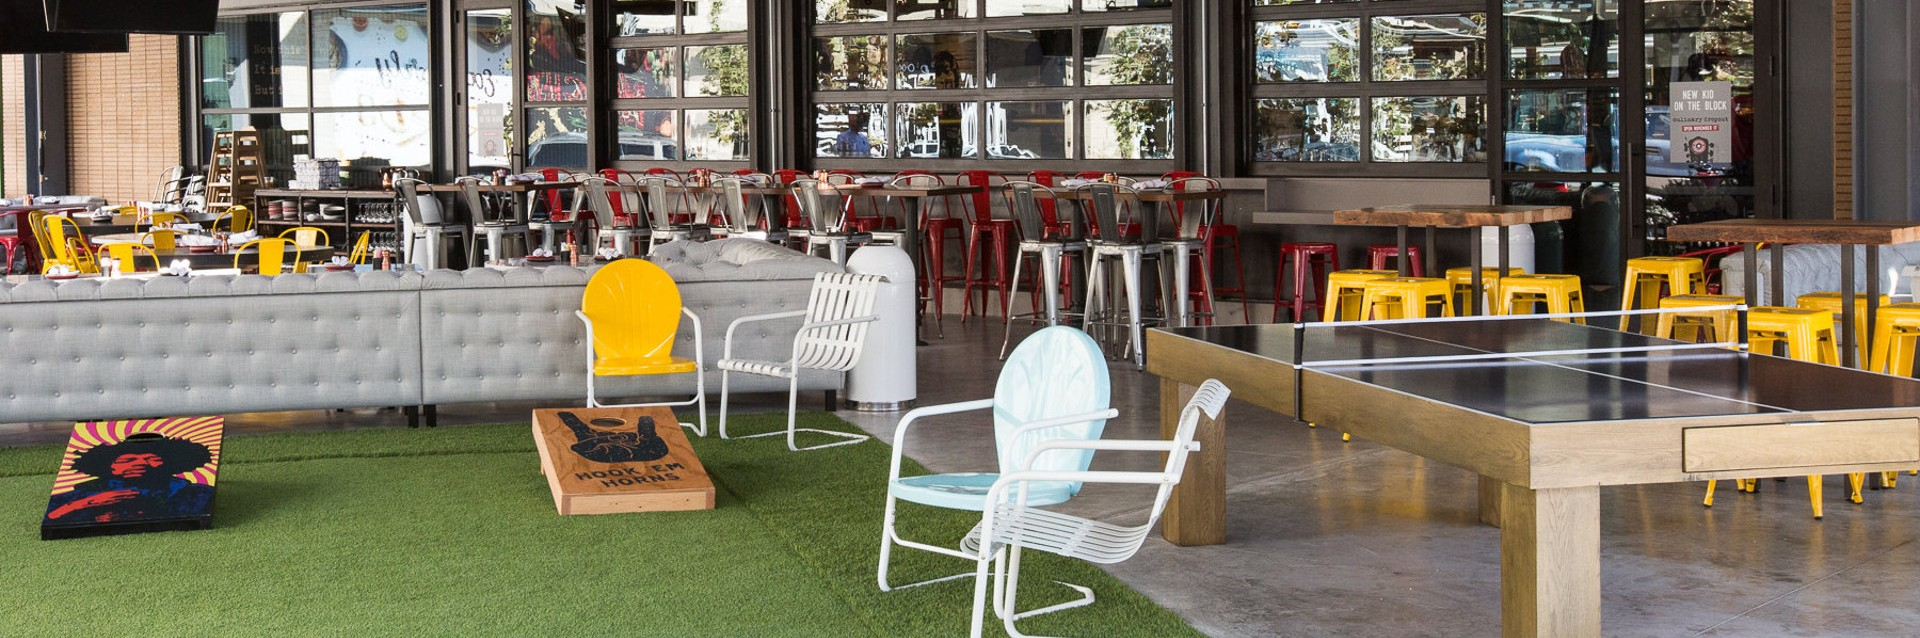 The large patio space and yard games featured at Culinary Dropout in the Domain NORTHSIDE